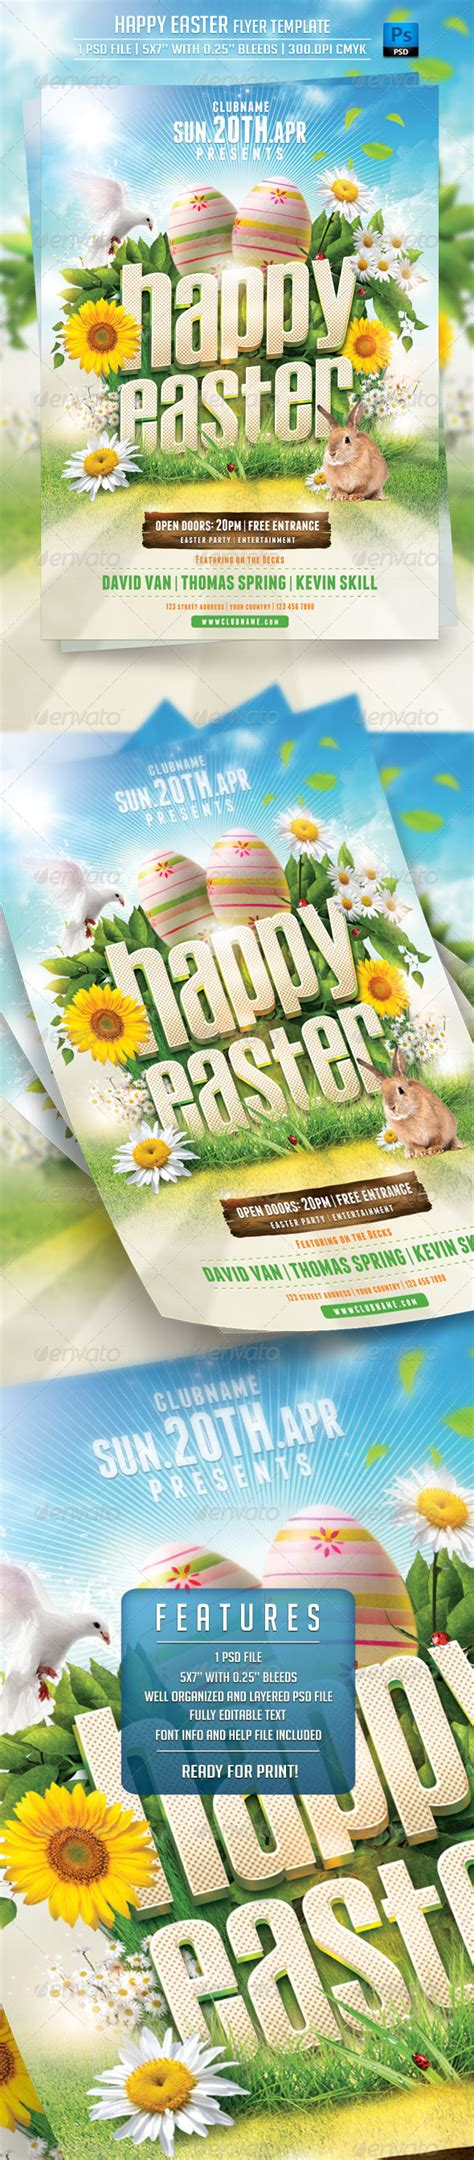 eastern creative multipurpose template zip happy easter flyer template print ad templates